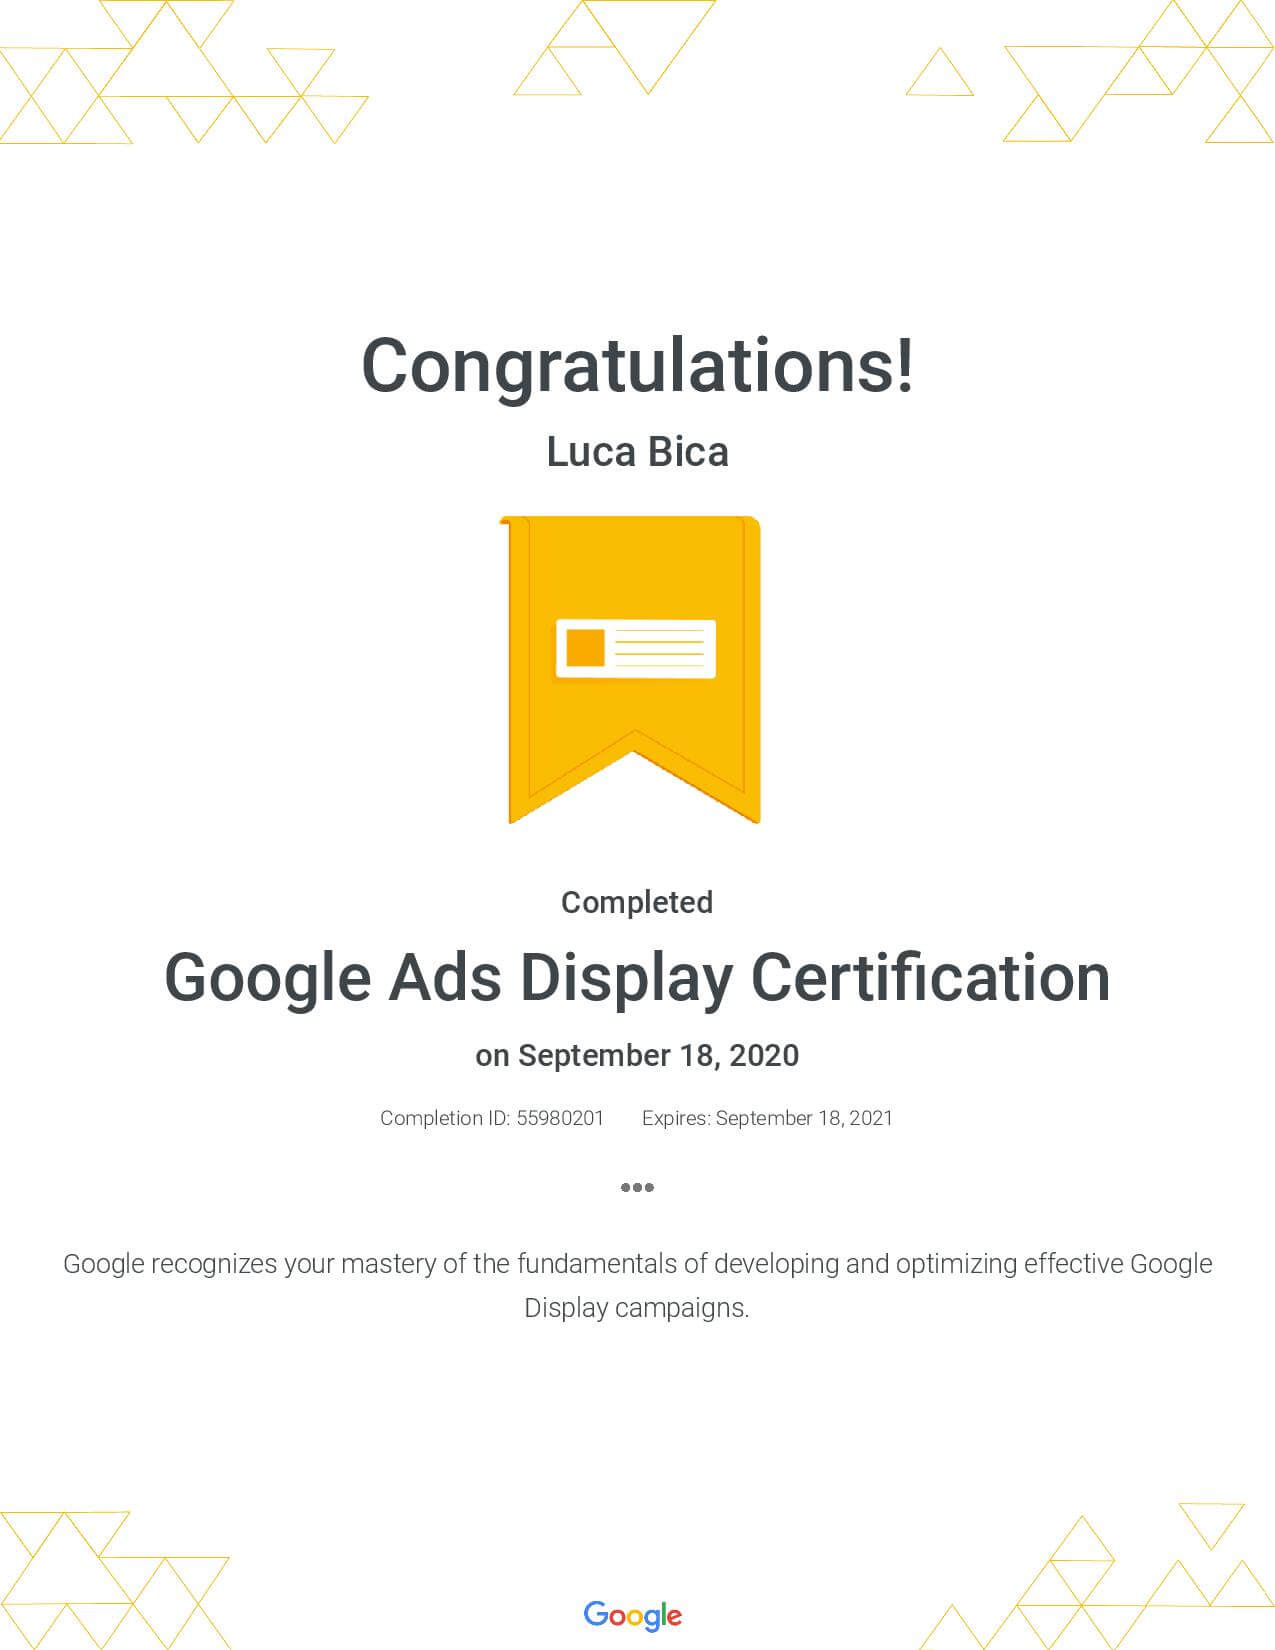 Google Ads Display Certification - Luca Bica